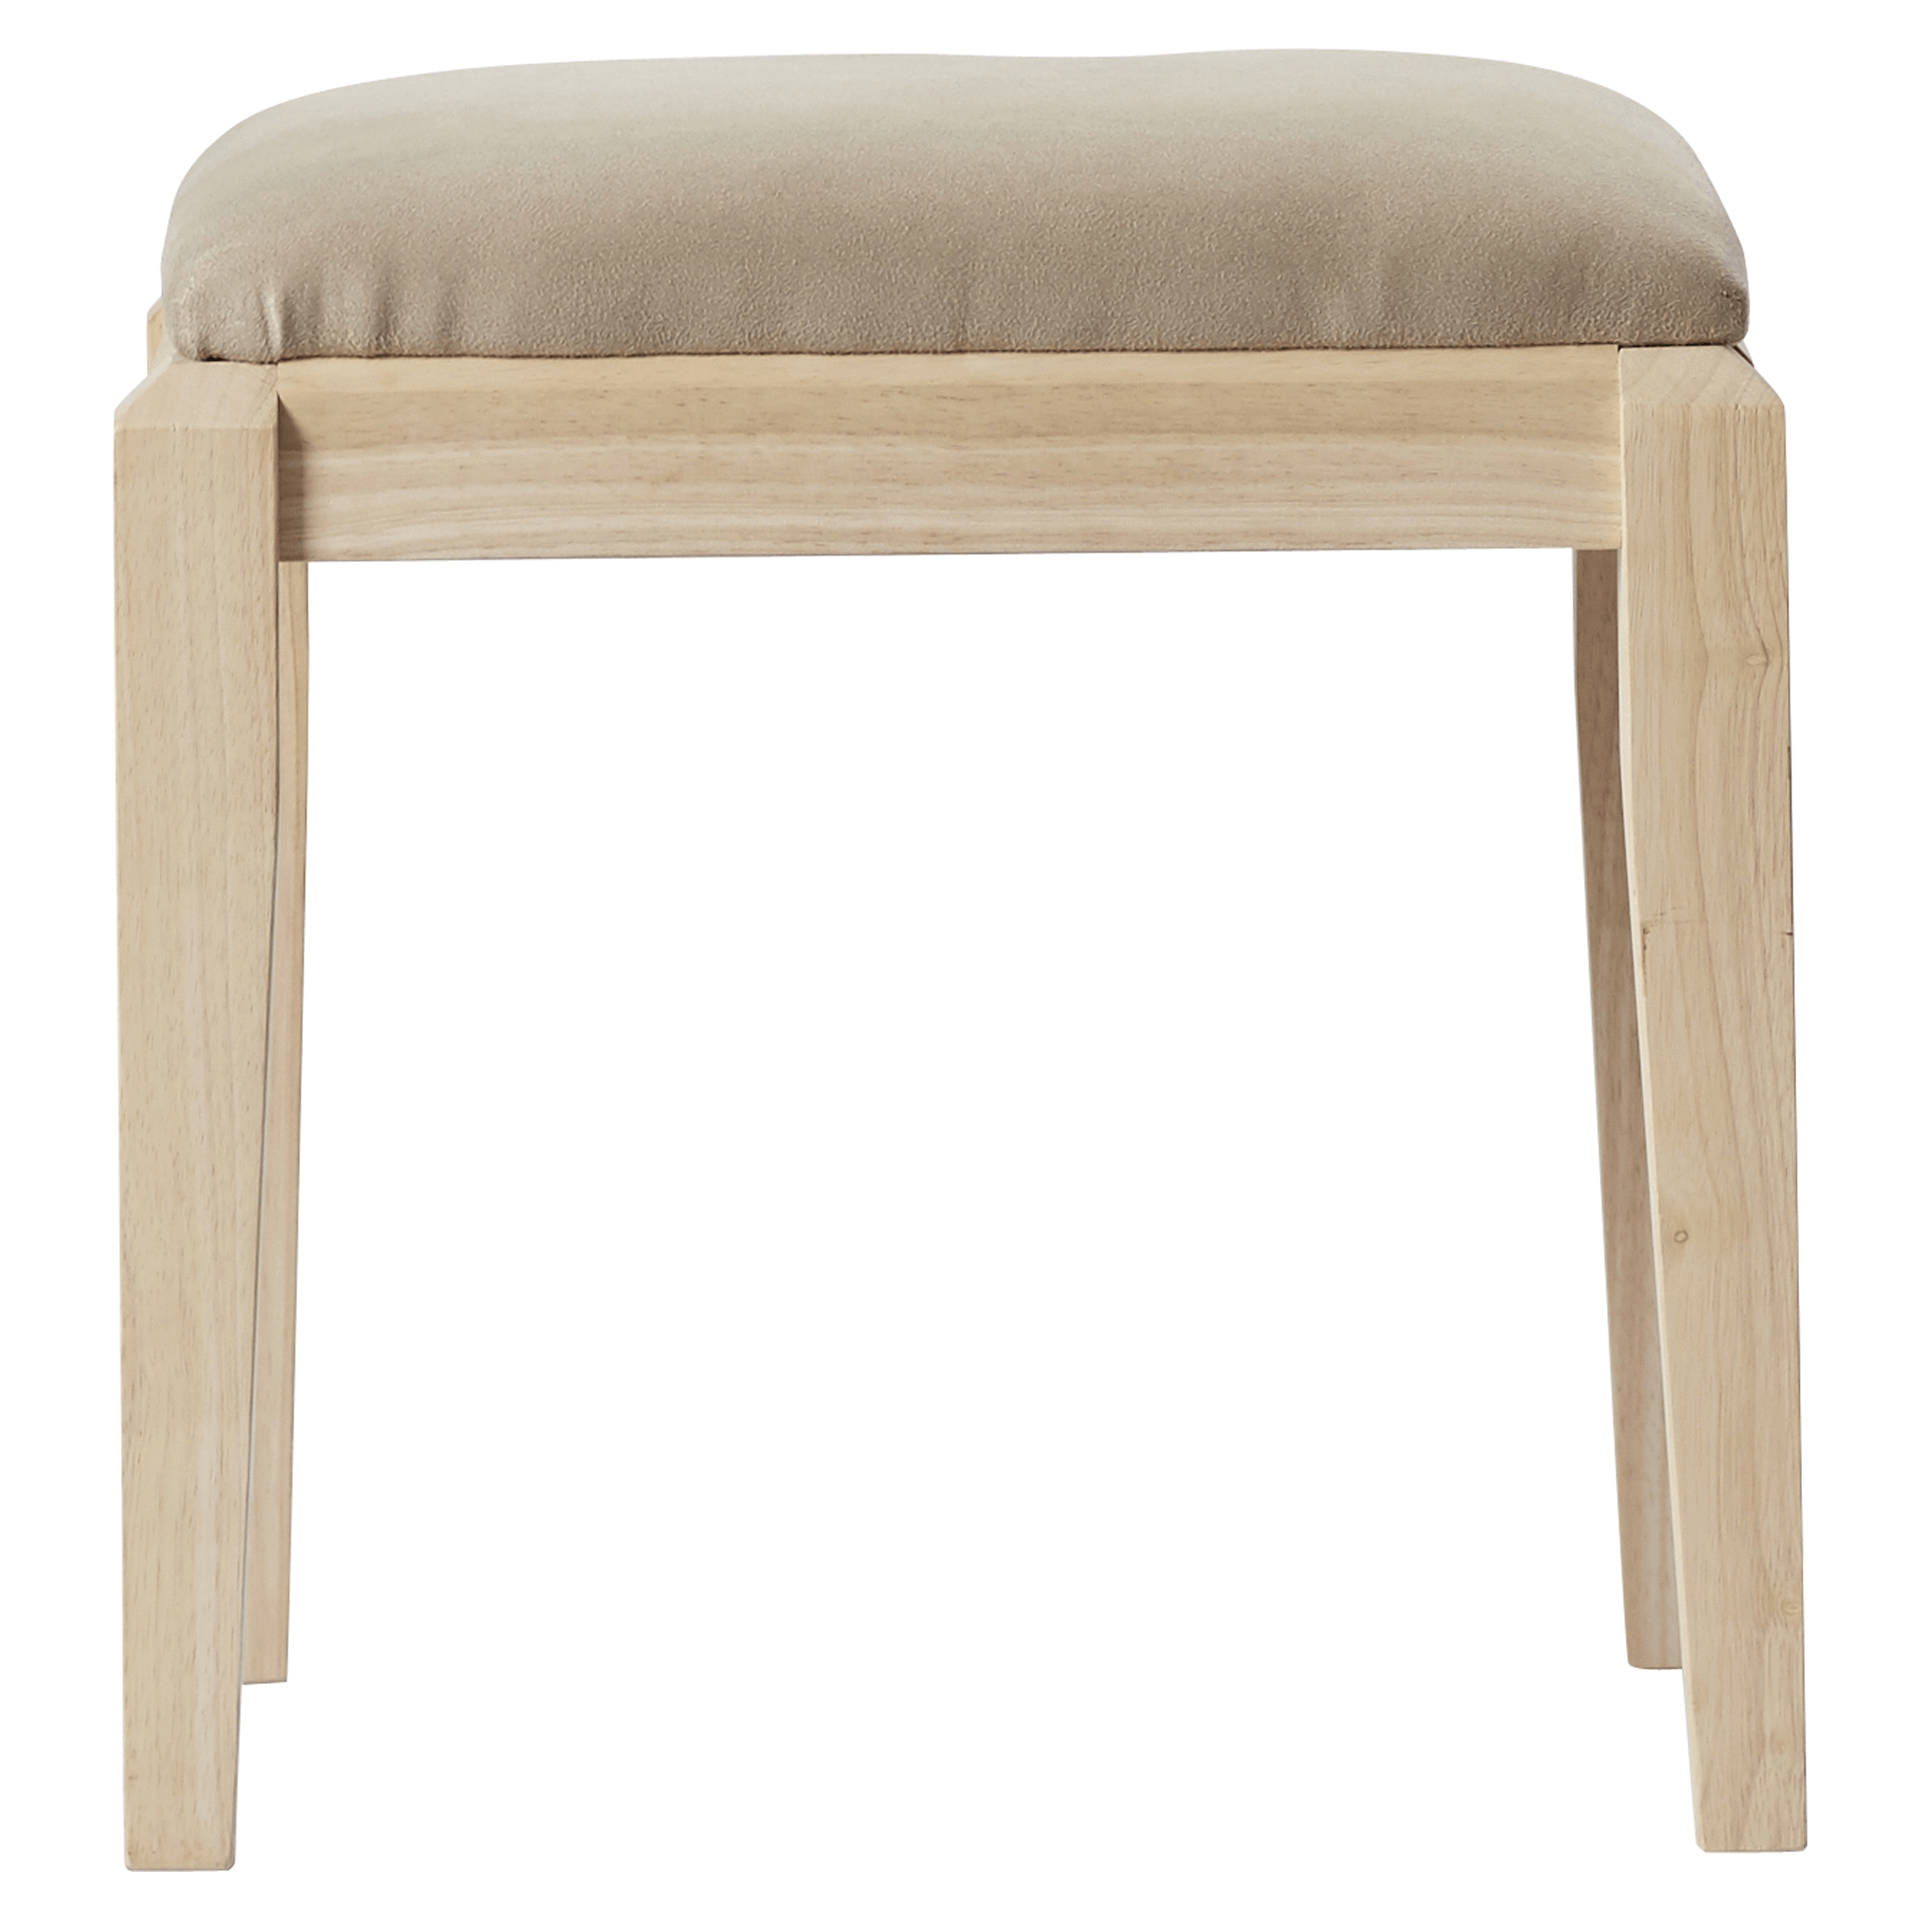 Best Upholstery For Unfinished Vanity Stool